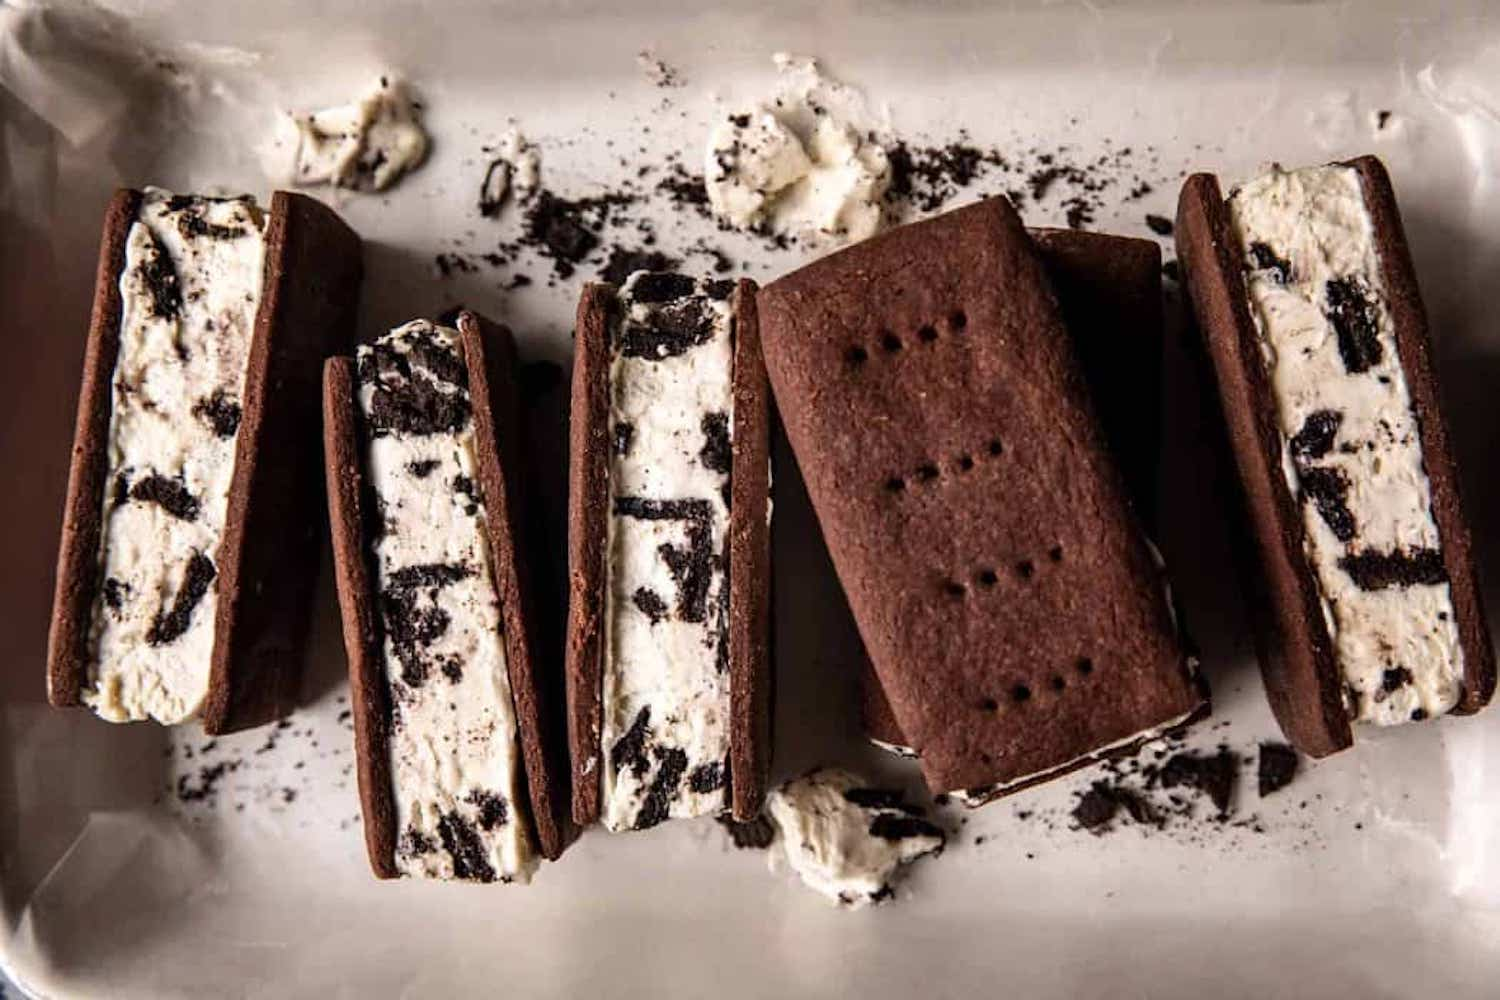 A row of brownie ice cream sandwiches, sitting on their sides, with cookies 'n' cream ice cream